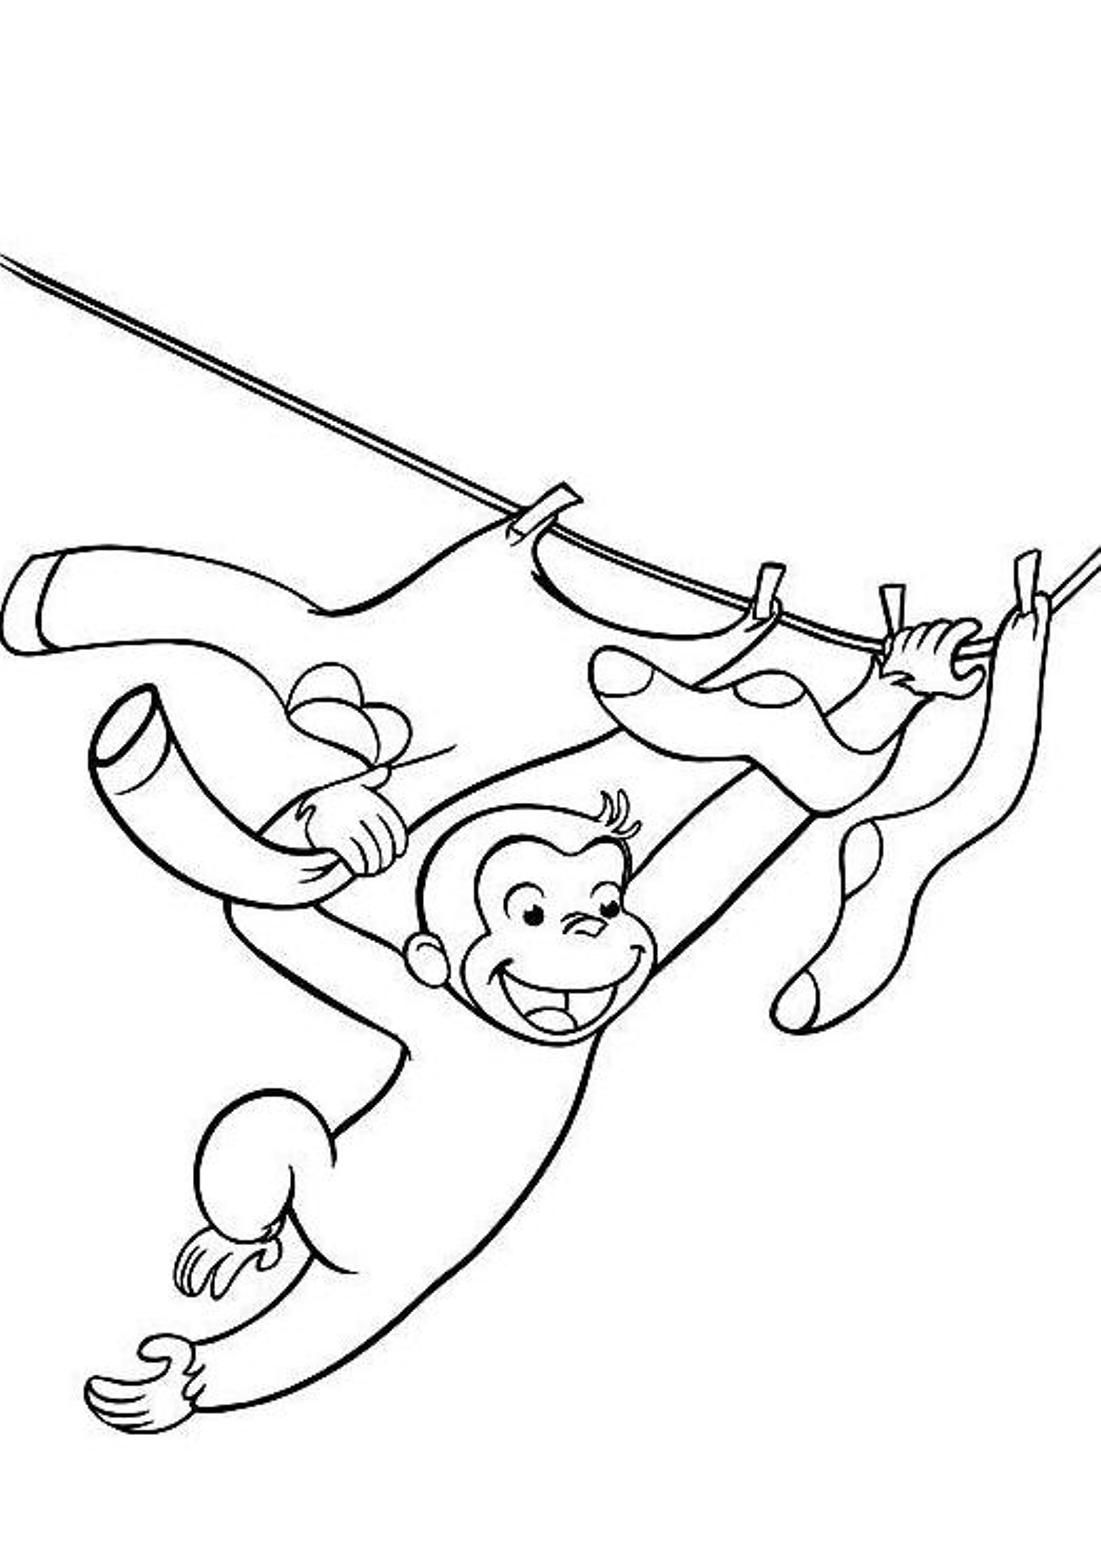 Printable coloring pages curious george - Curious George Coloring Pages 1st B Day Pinterest Curious George Free Coloring And Monkey